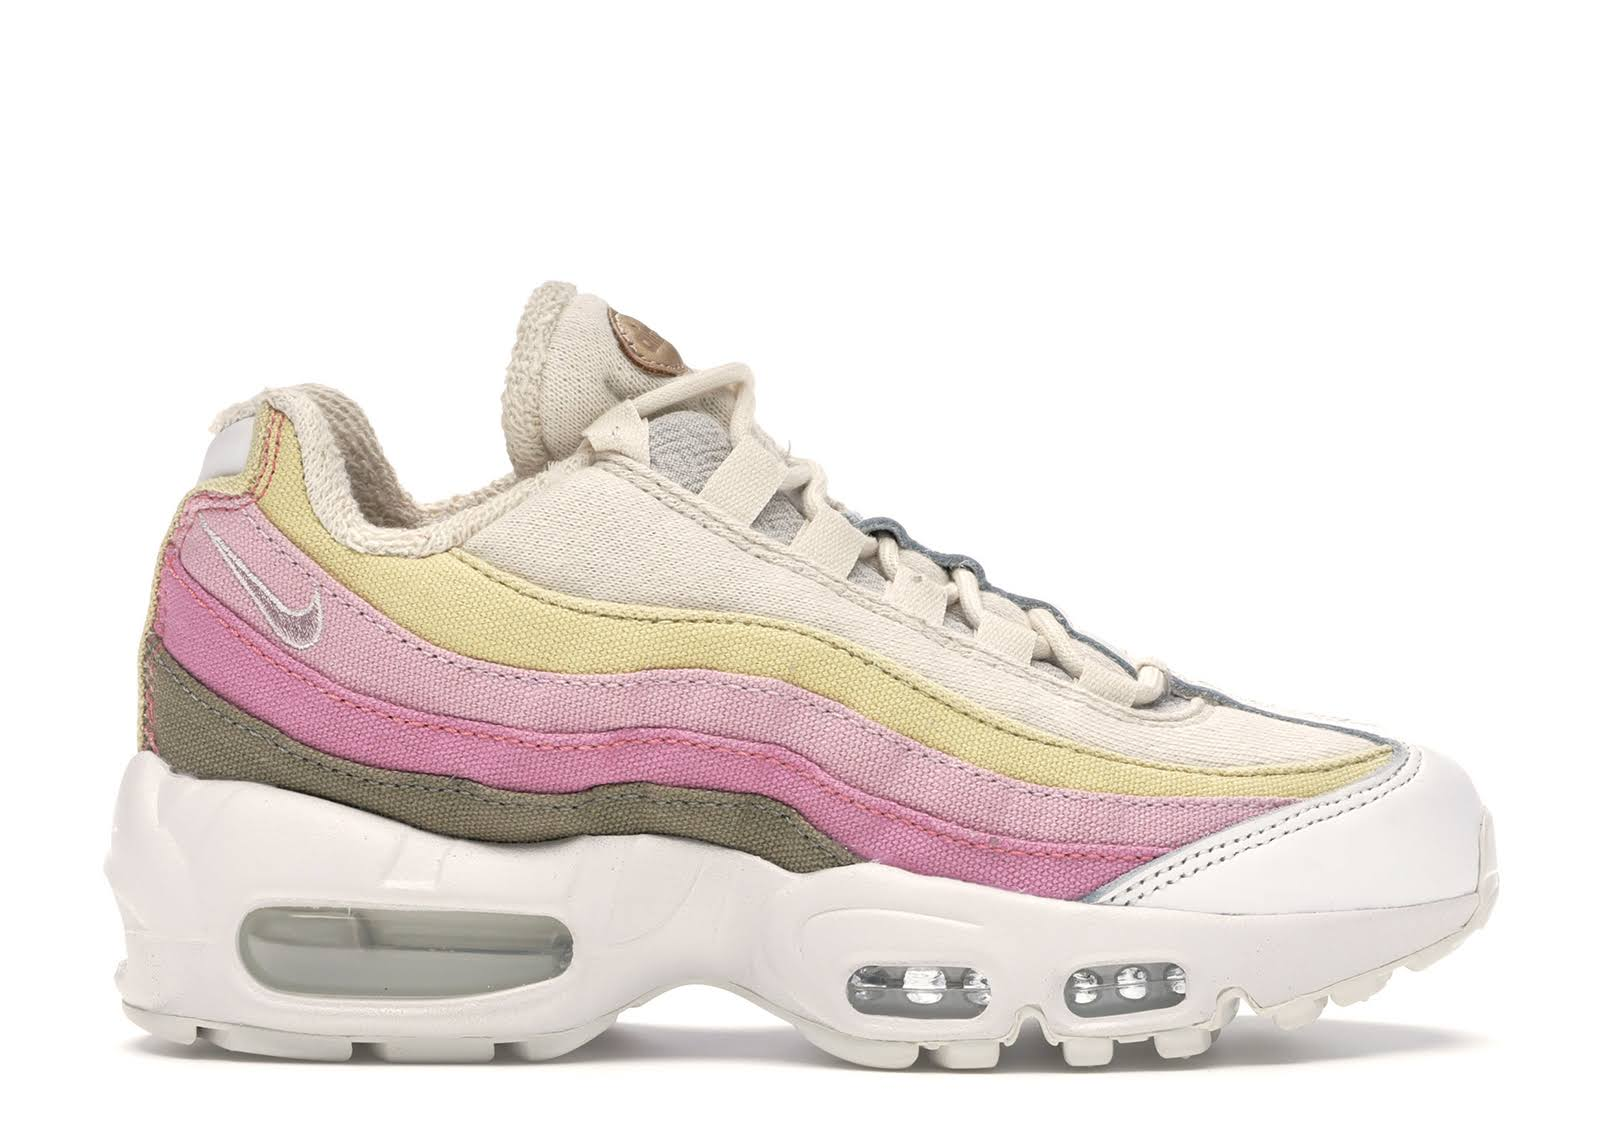 Nike Air Max 95 Plant Color Collection Beige (W)  HWfm3QC